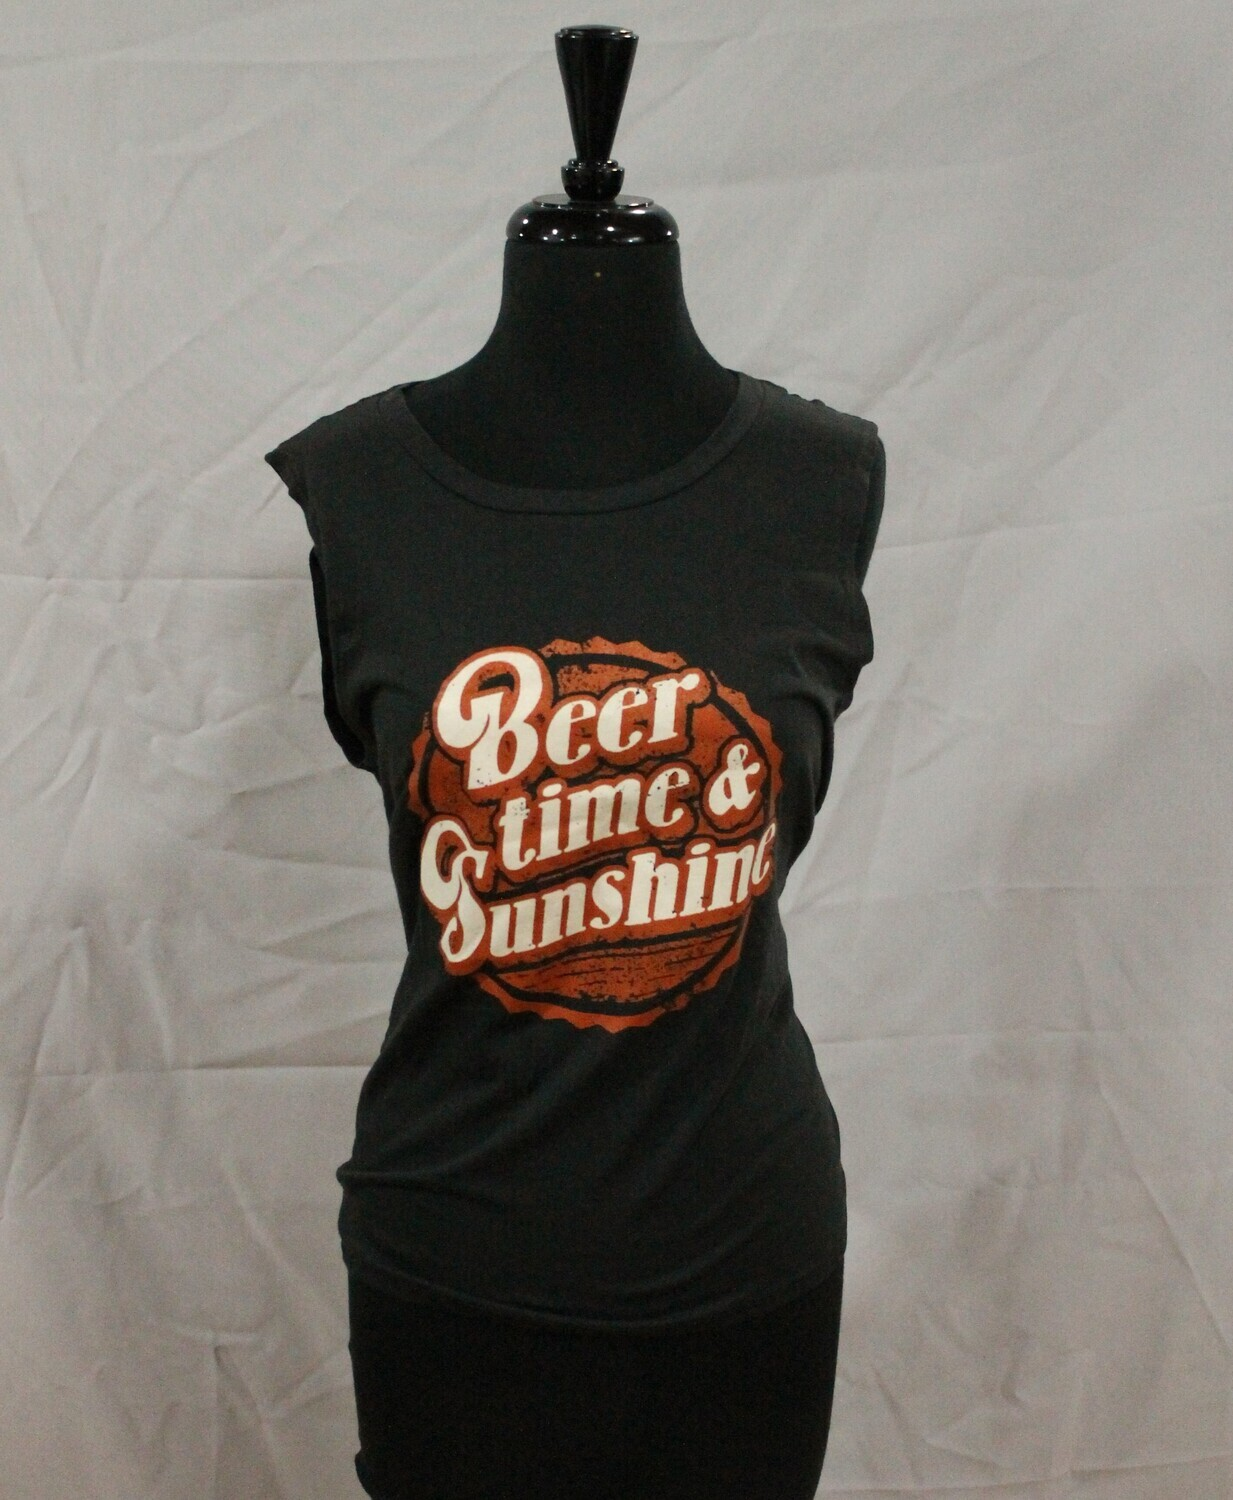 Refined Canvas ZF843-7299 Beer/Time Sunshine Tank